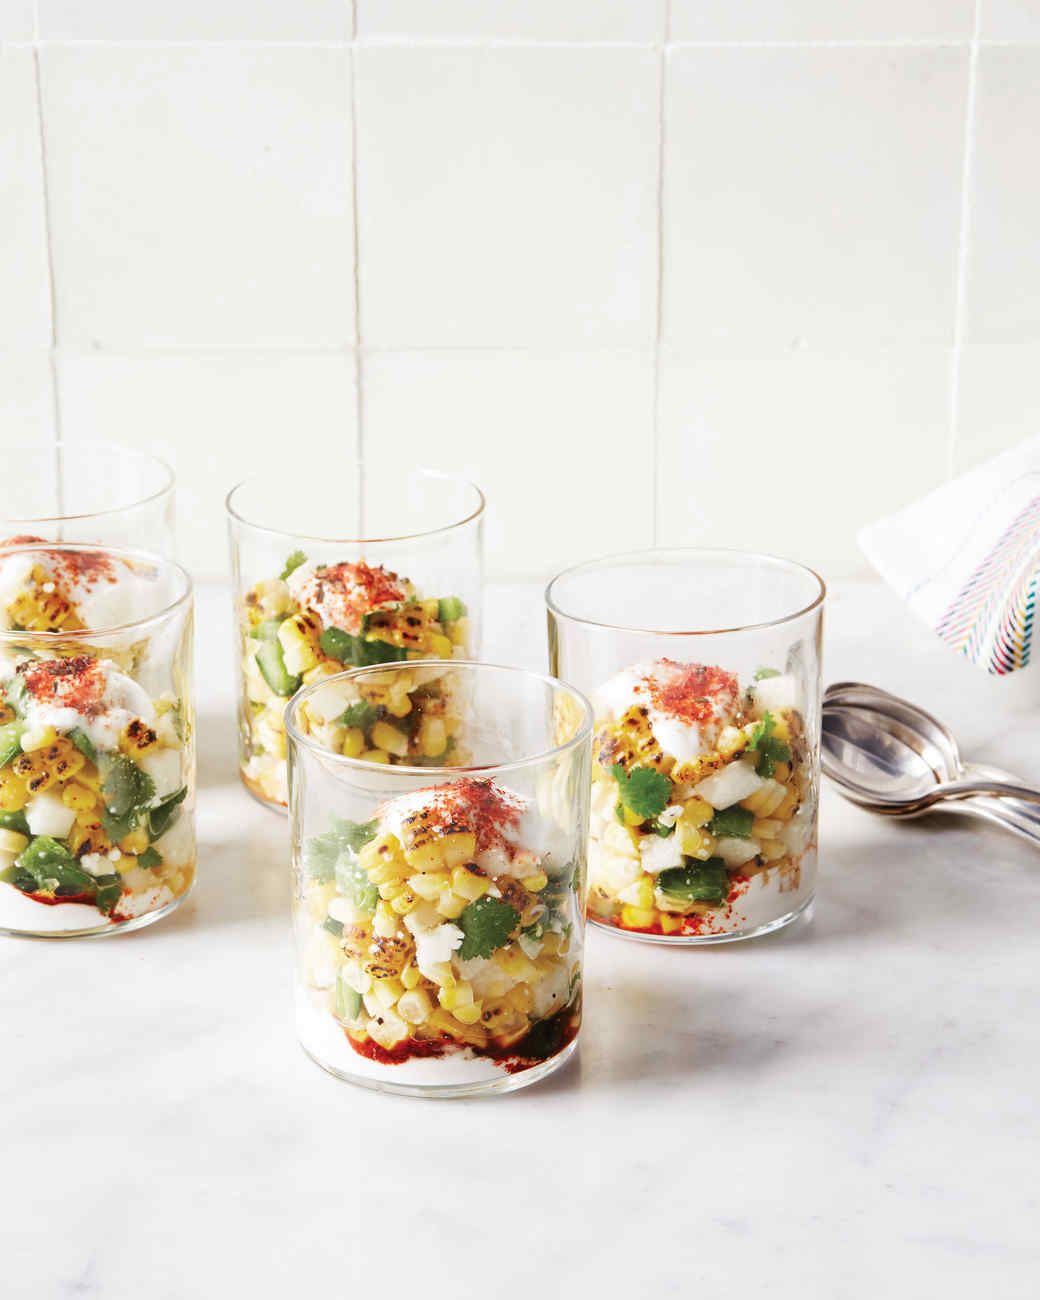 Seasoned Roasted-Corn Salad Cups